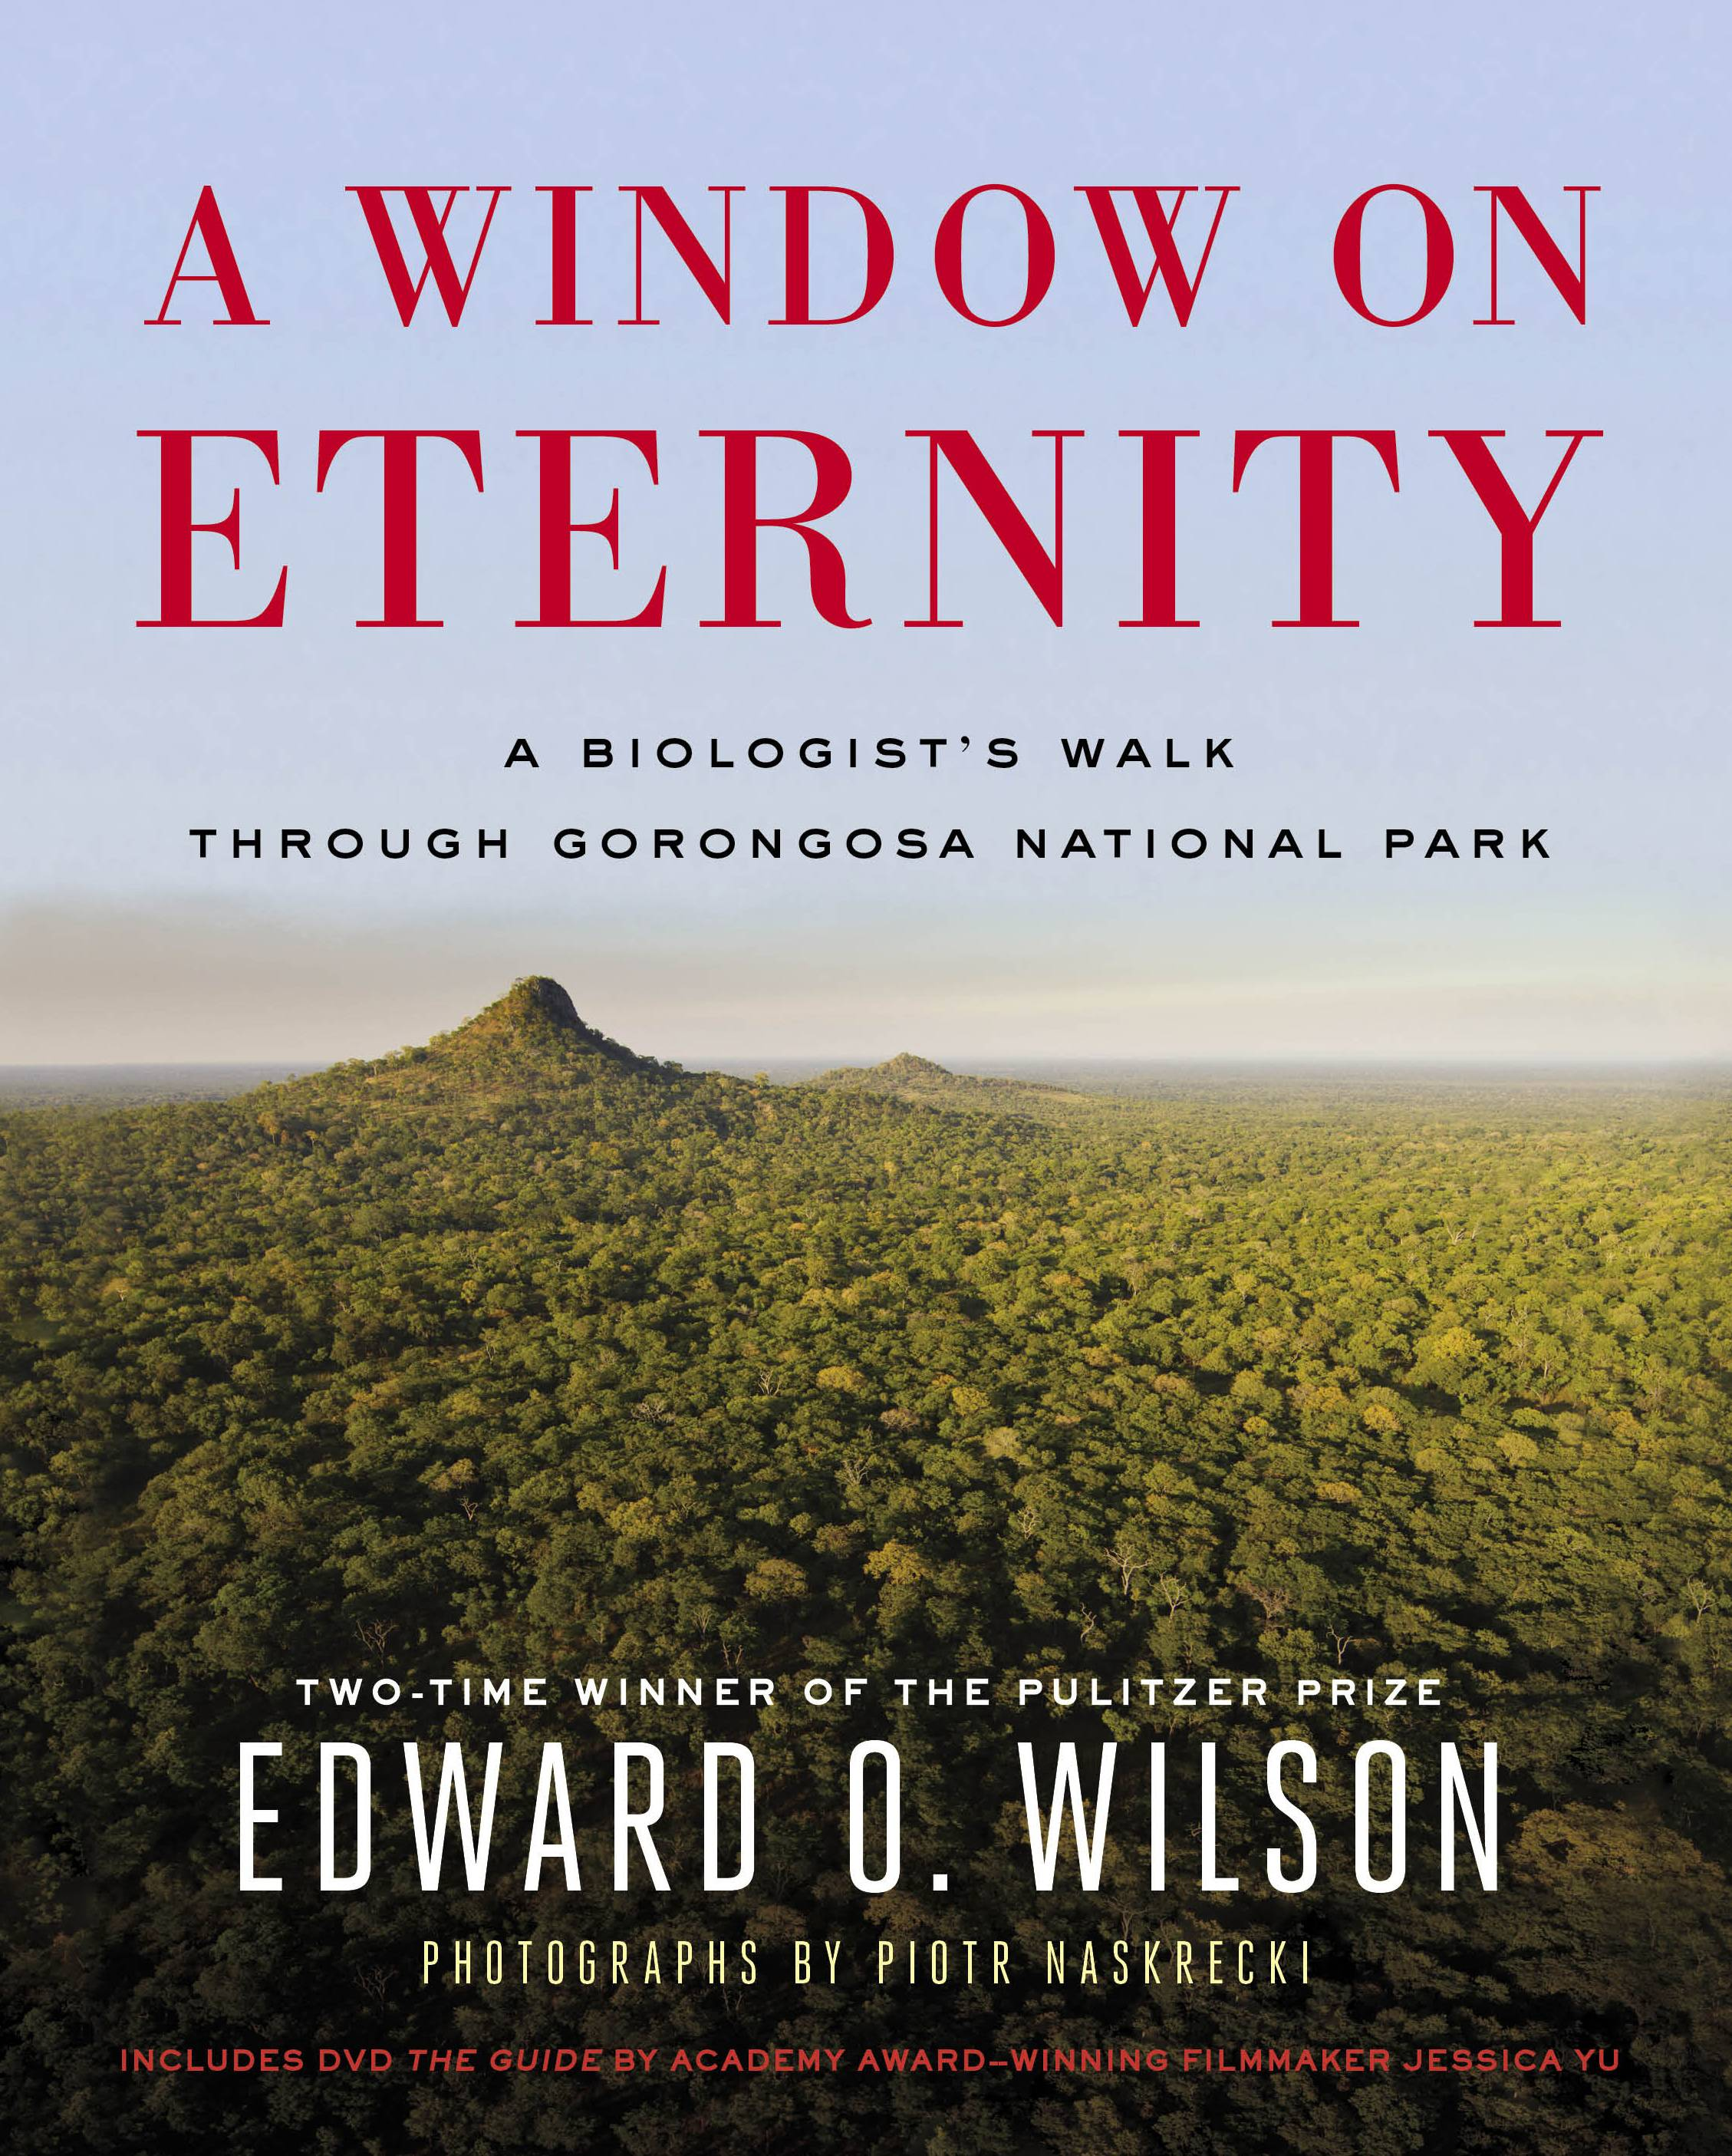 """A Window on Eternity: A Biologist's Walk Through Gorongosa National Park"" by Edward O. Wilson focuses on what is working among the animals in the park."